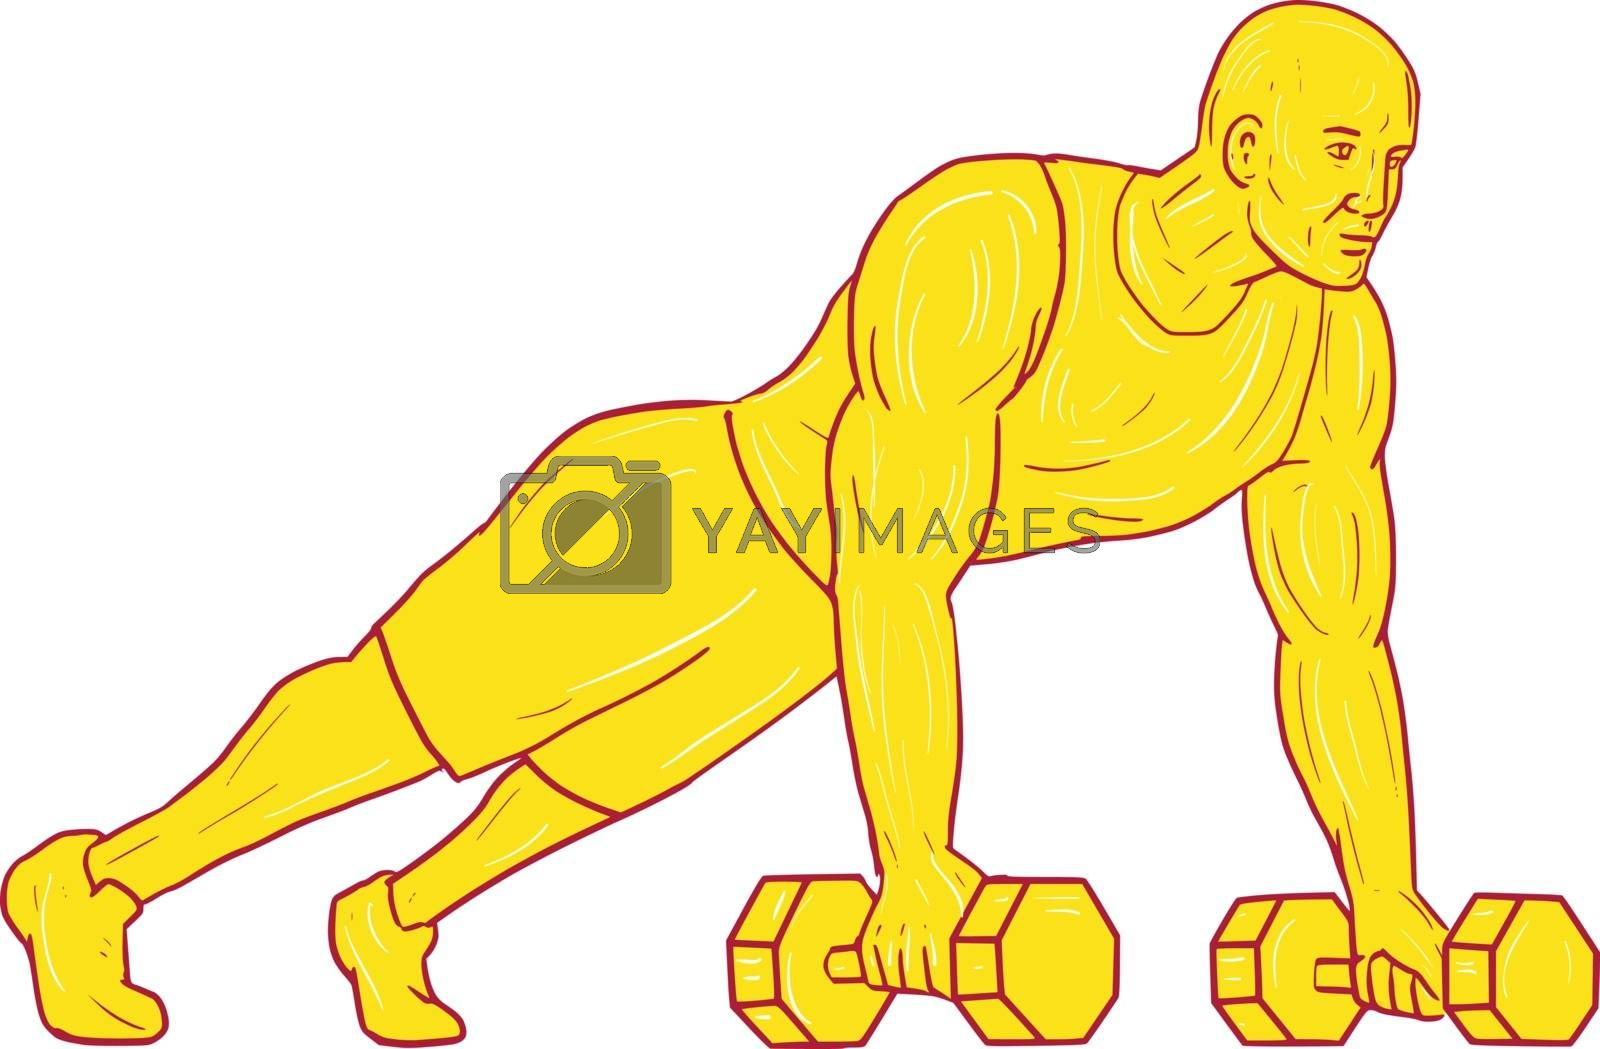 Drawing sketch style illustration of an athlete working out doing push ups with two hands holding dumbbell set on isolated white background.